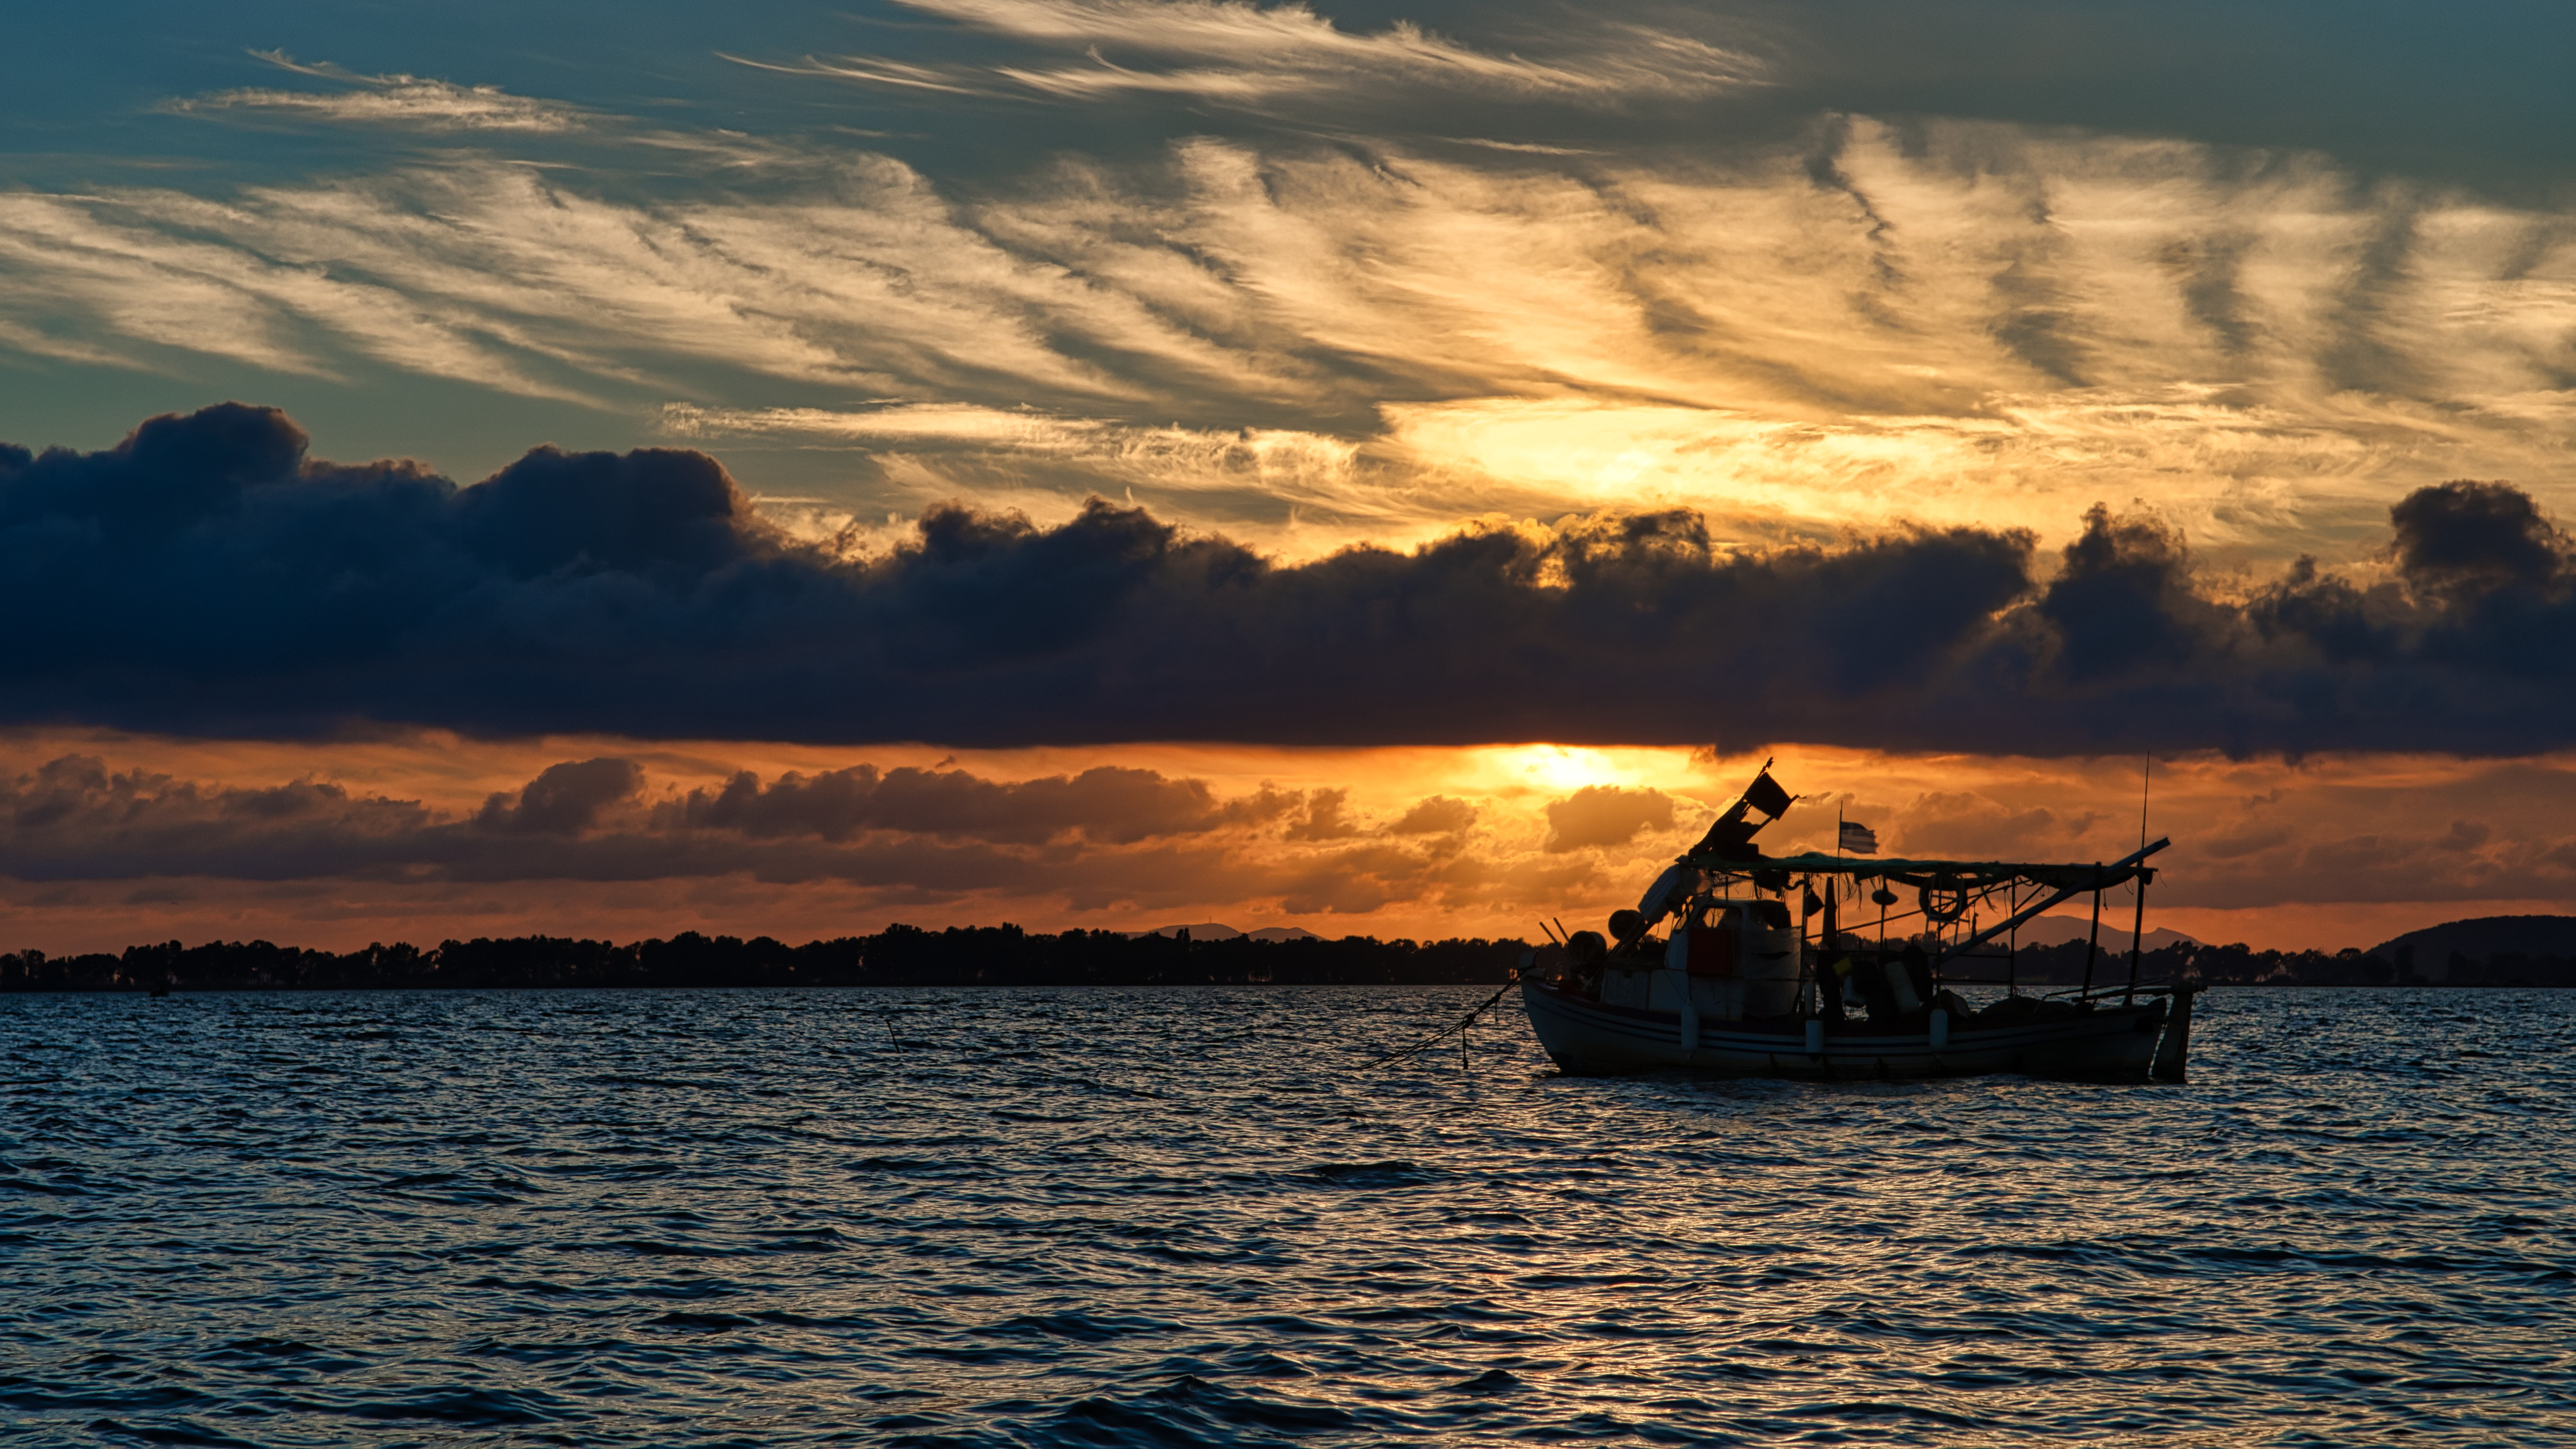 Silhouette photo of boat on ocean during golden hour